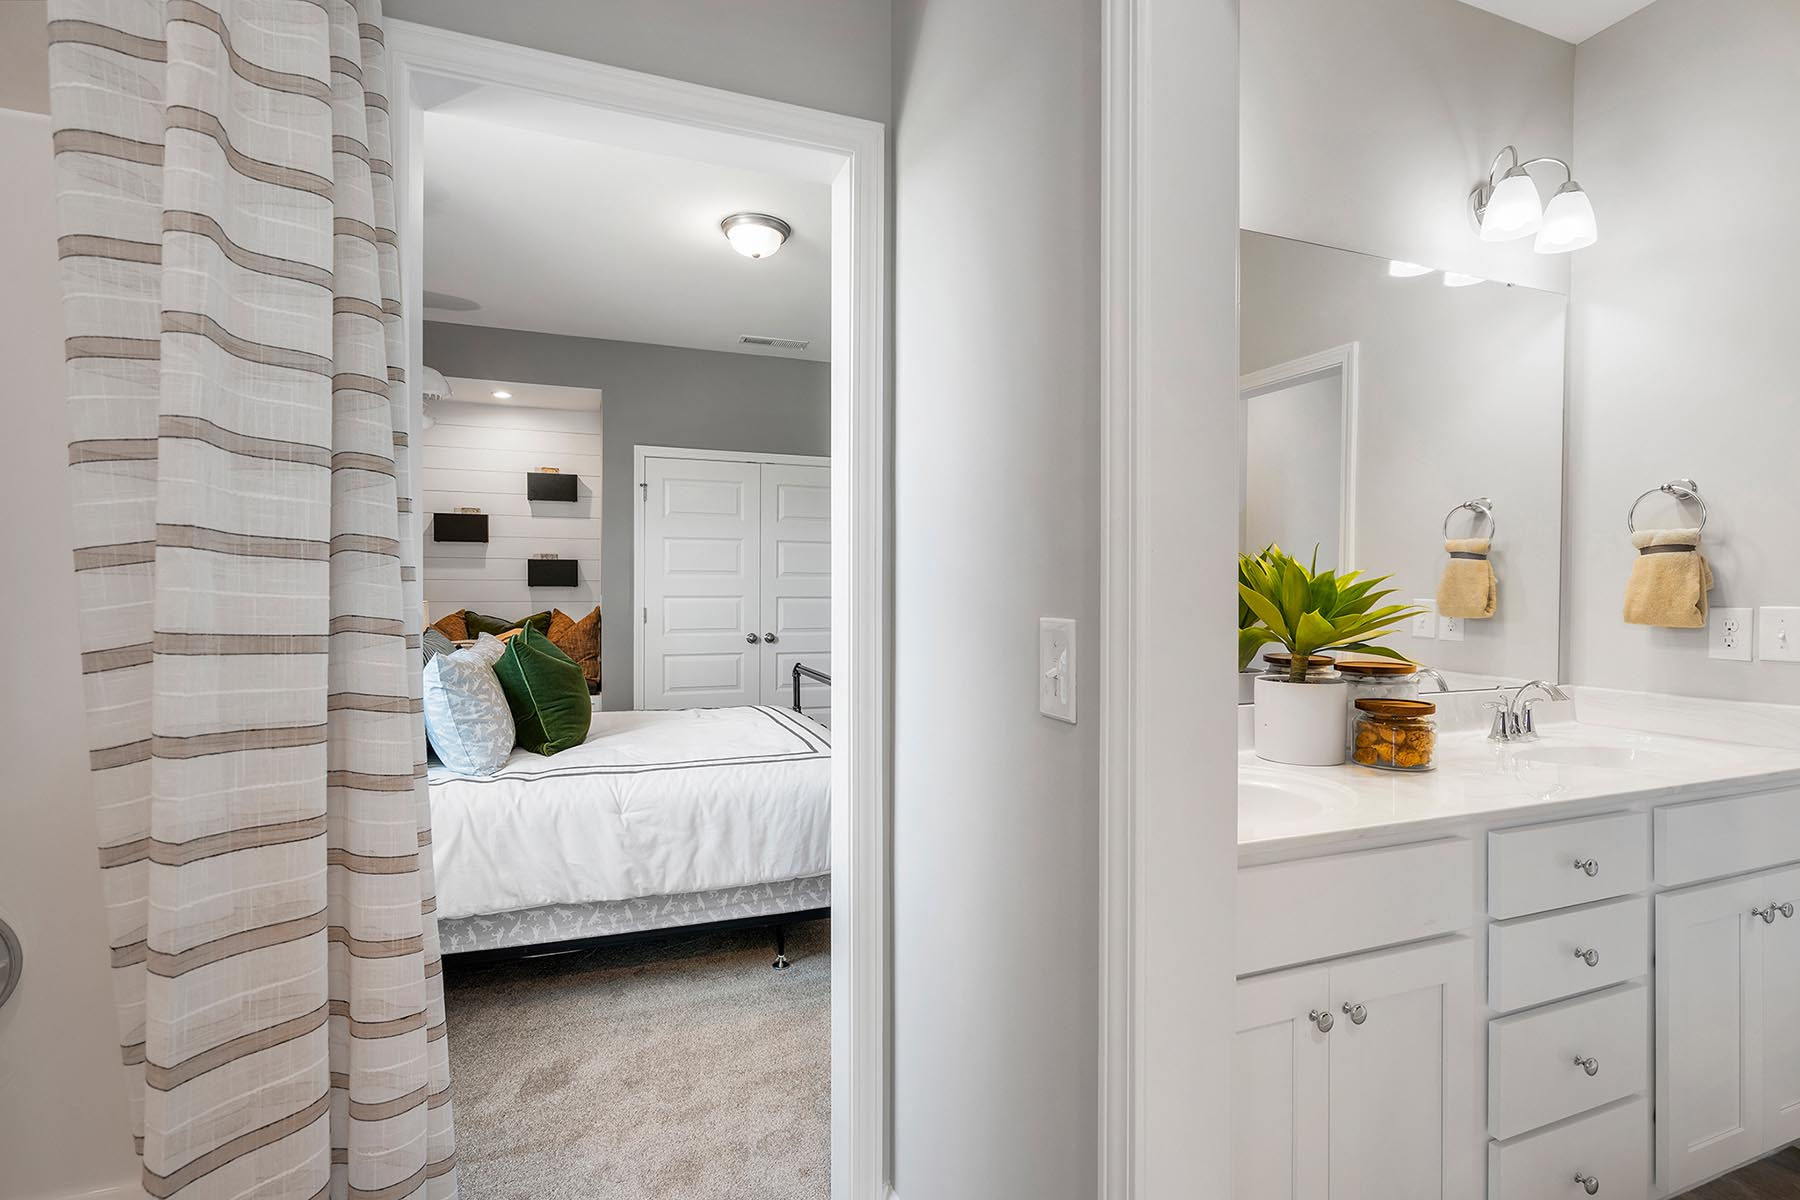 Larkin Plan Bath at Fairview Park in Cary North Carolina by Mattamy Homes